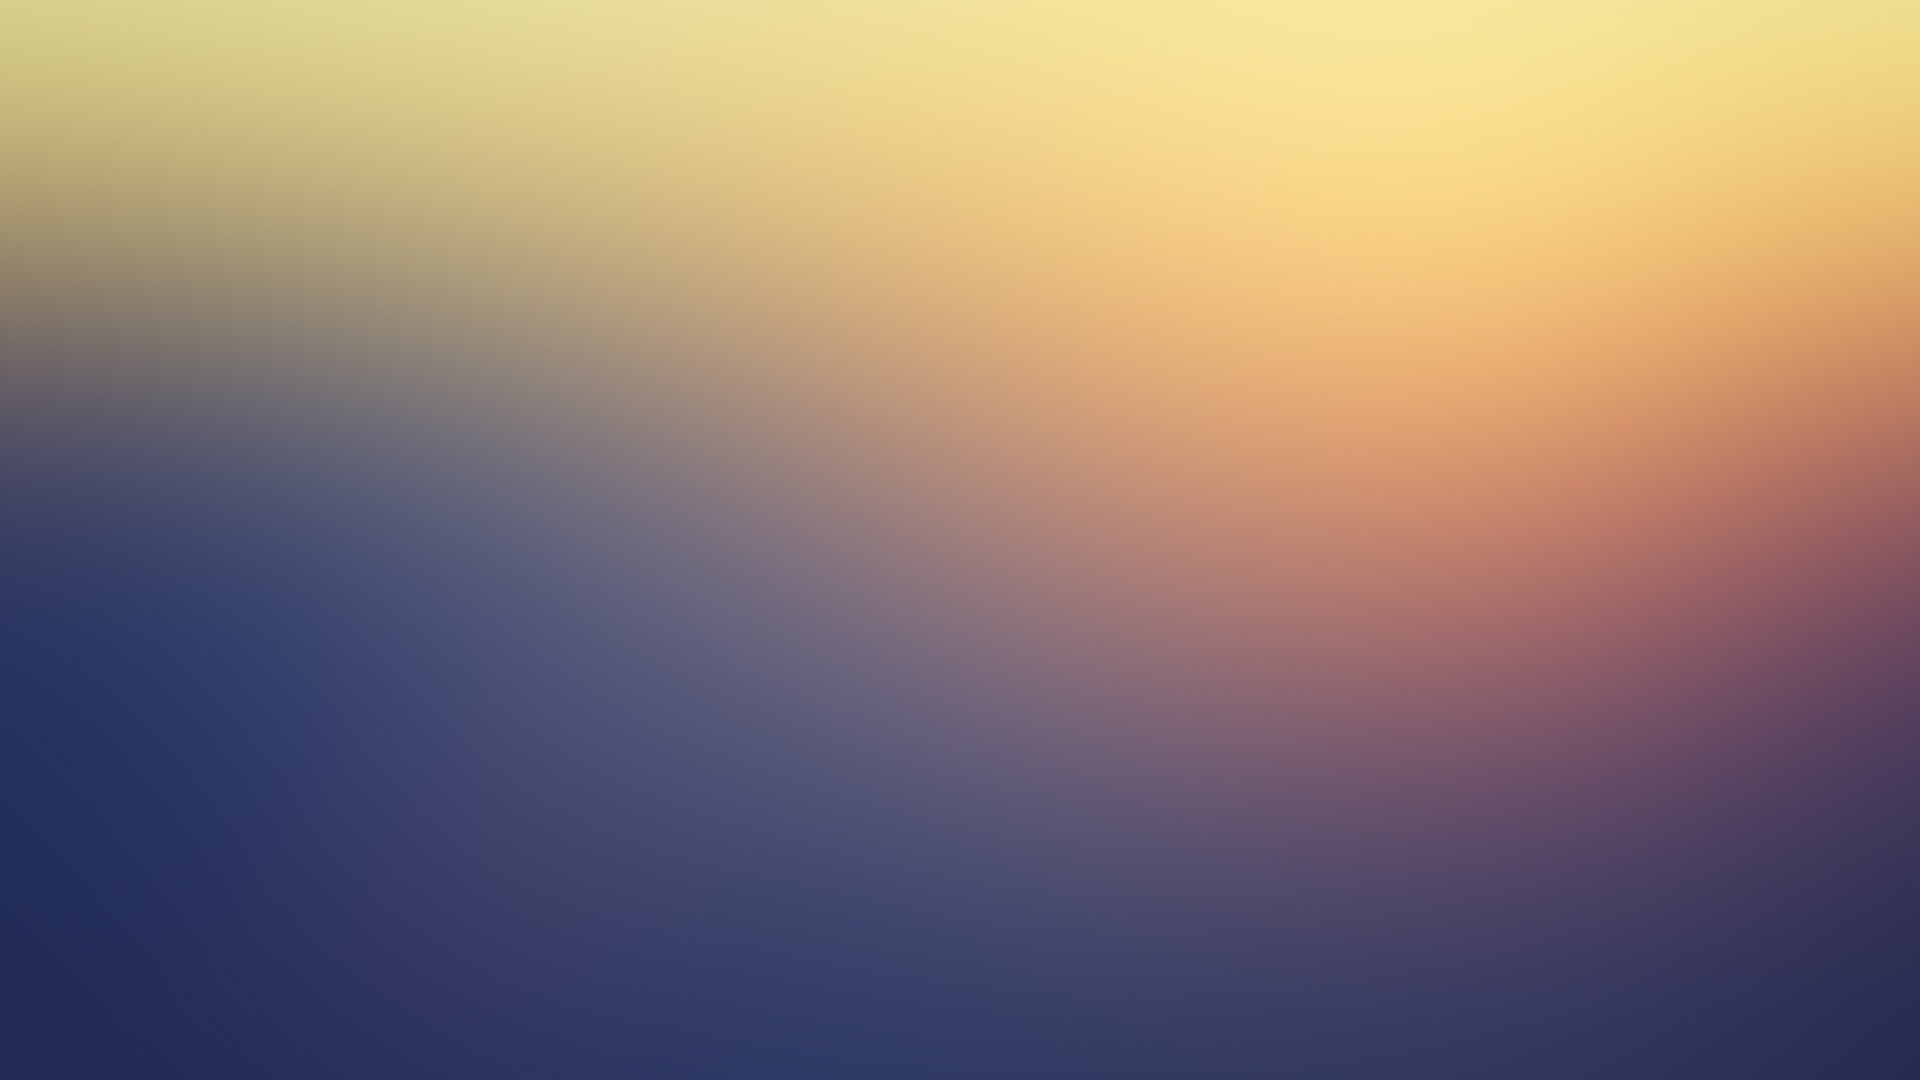 MO:136 Simple Wallpaper - Widescreen Wallpapers: Simple, 46+ on